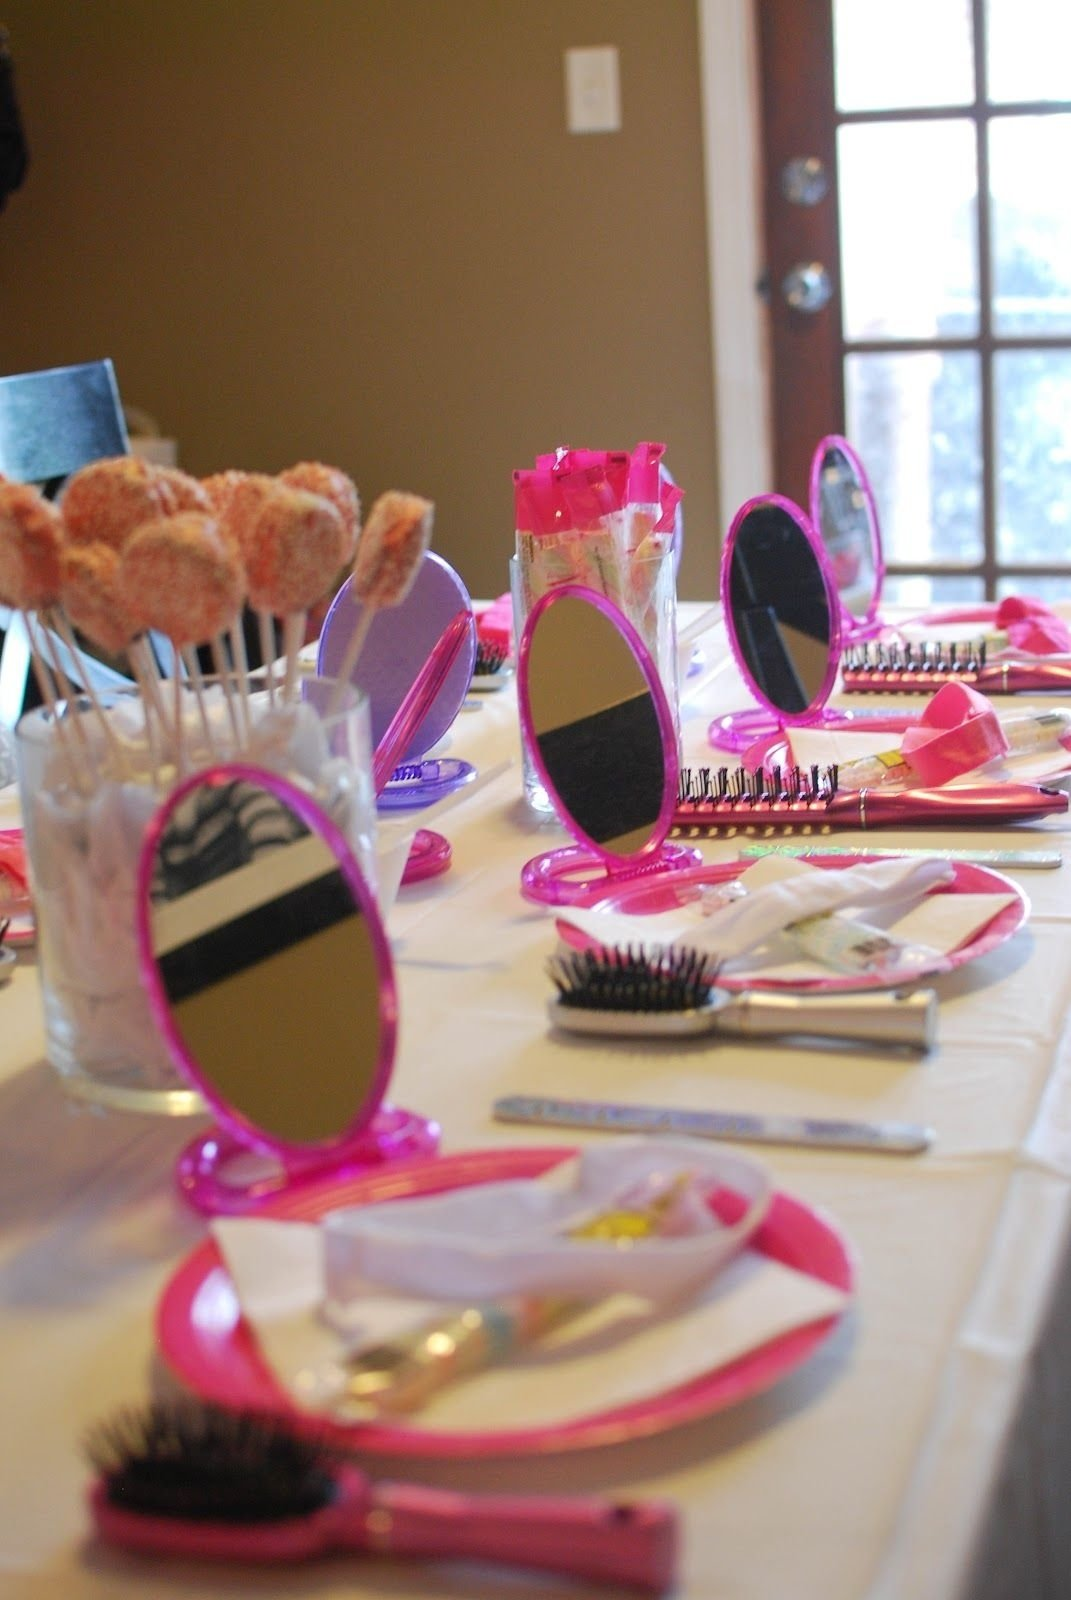 10 Most Popular Spa Party Ideas For Tweens 8 Yr Old Girls